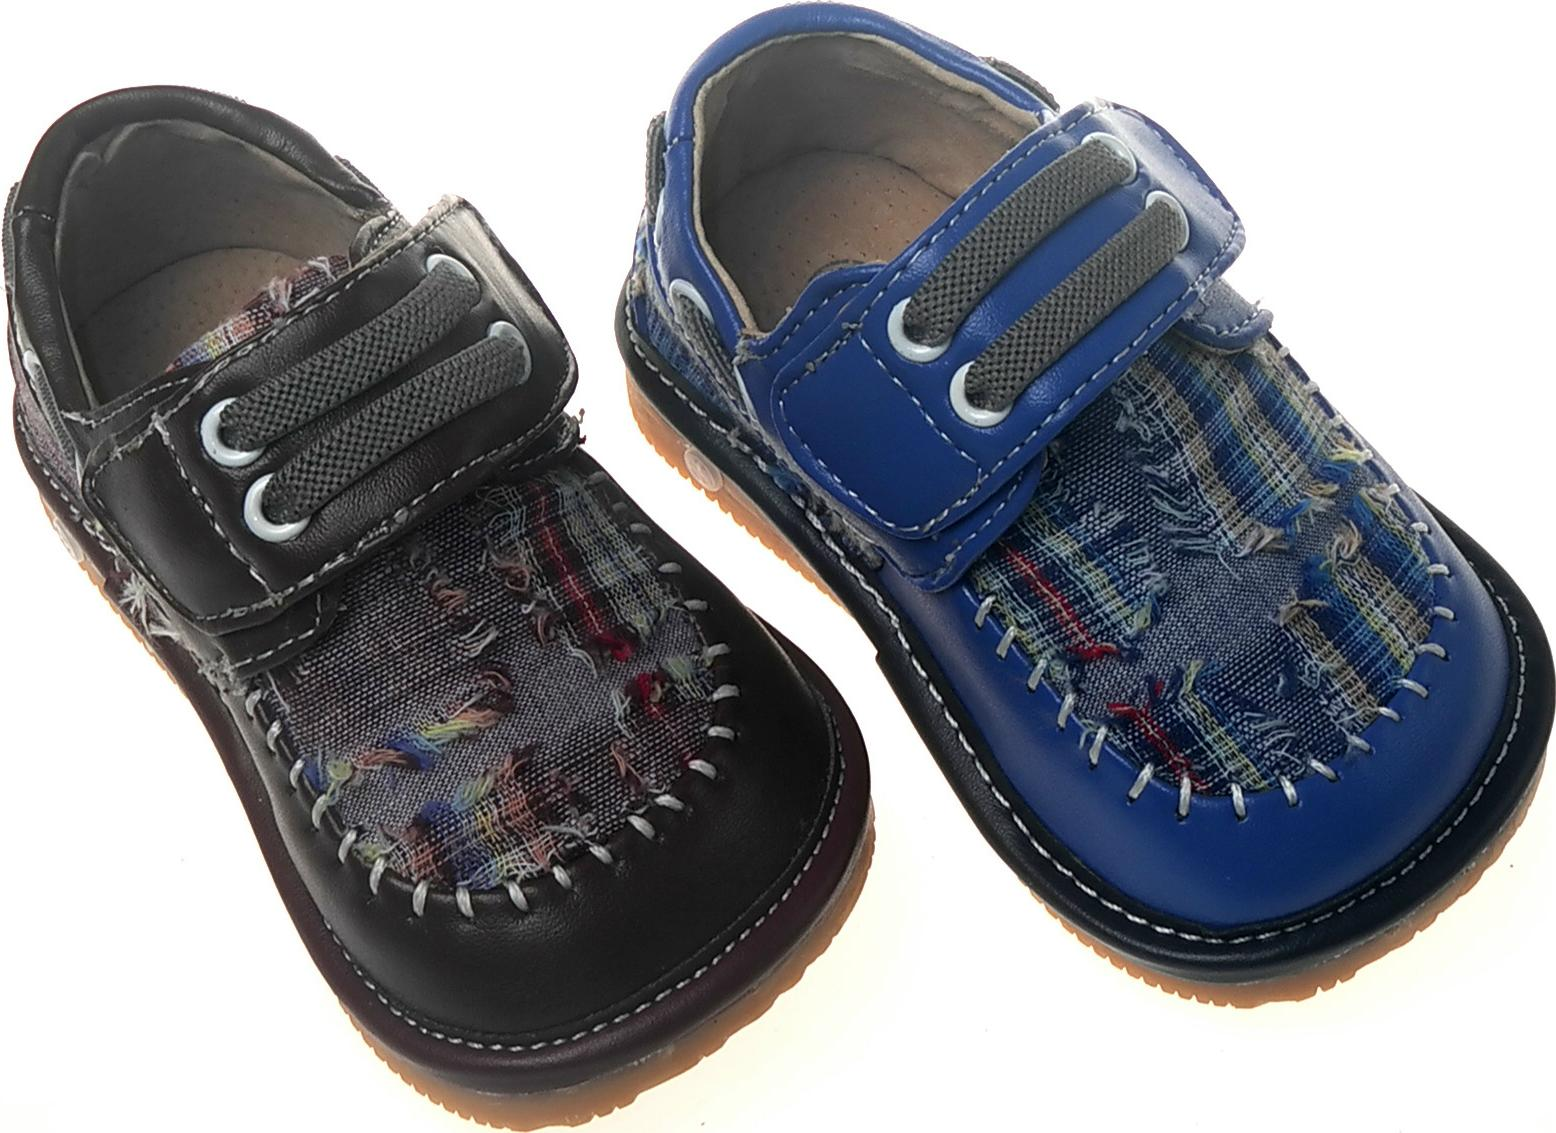 boy squeaky shoes blue sq766dr toddler size 1 7